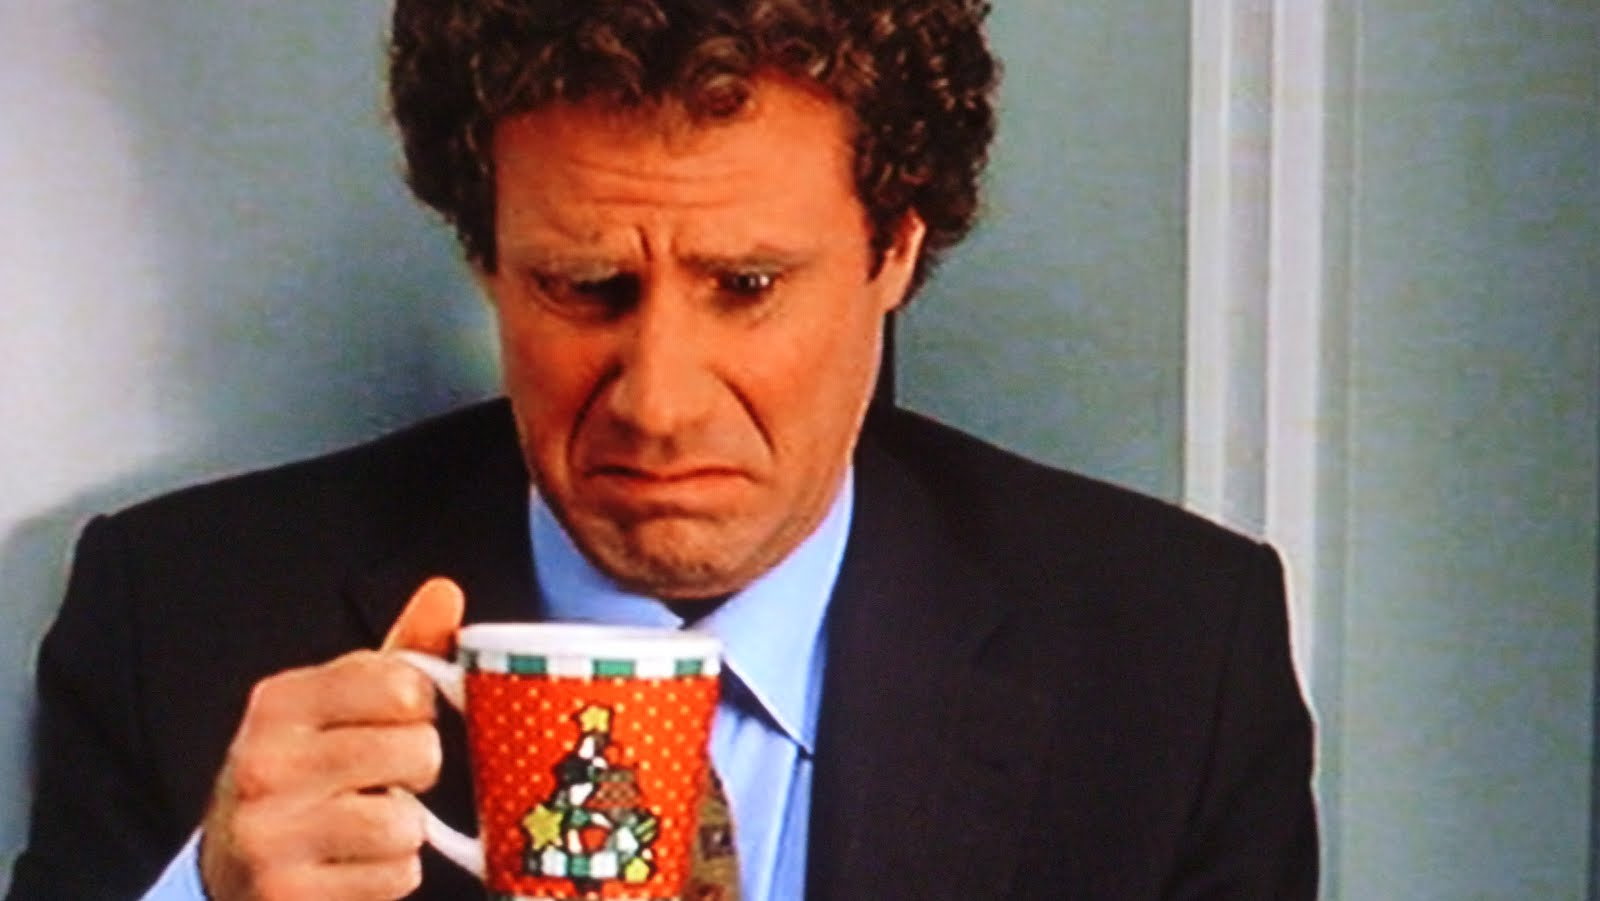 Black Coffee Drinkers Are More Likely To Be Psychopaths